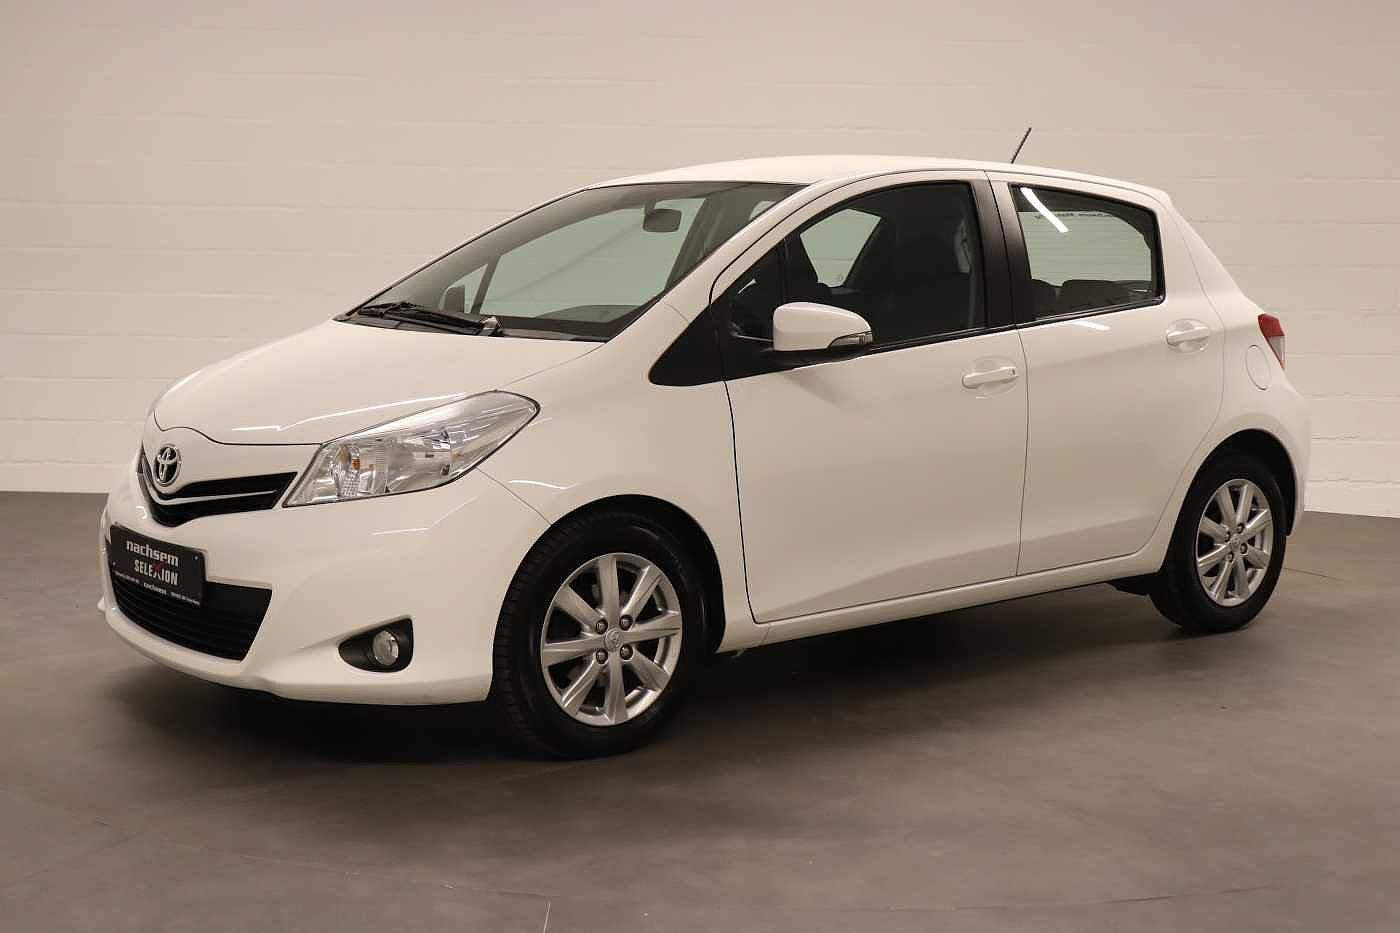 Toyota Yaris 1.4 D-4D 6MT - photo 3